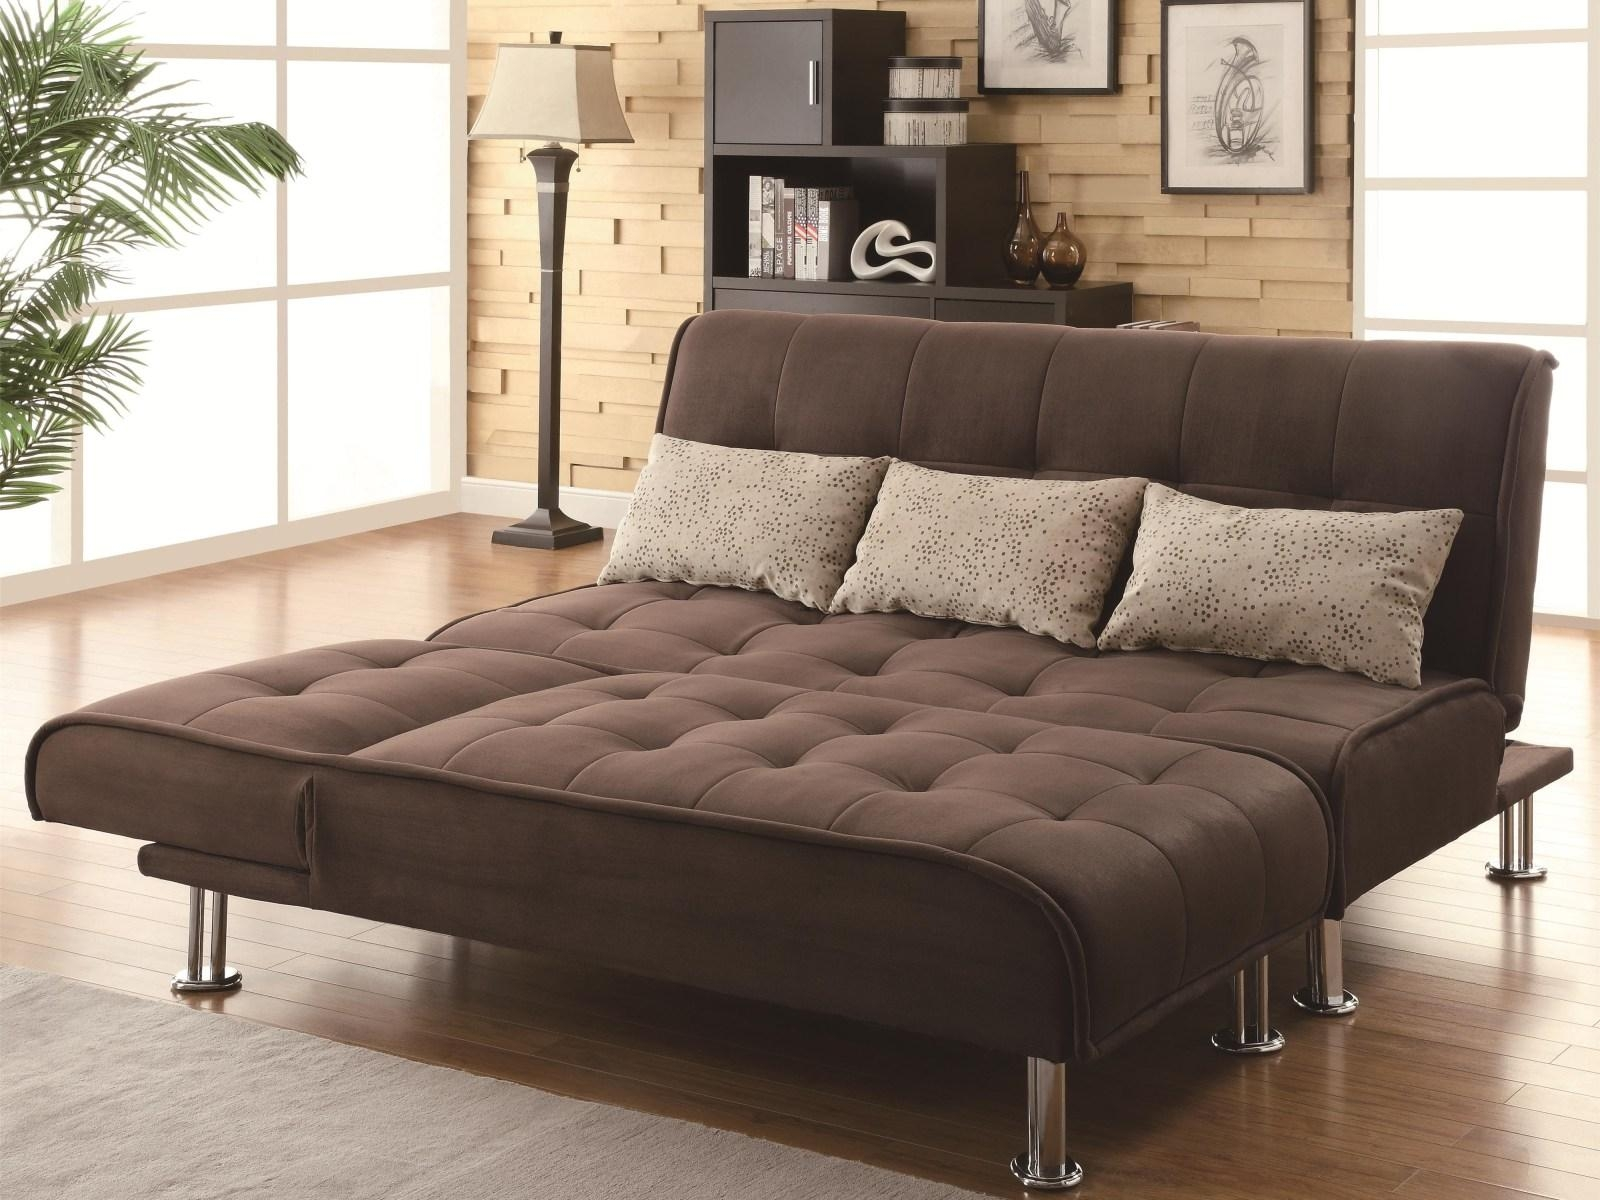 ▻ Sofa : 5 Wonderful Queen Size Couch Bed Dark Brown Color Regarding Sofa Sleepers Queen Size (Image 2 of 20)